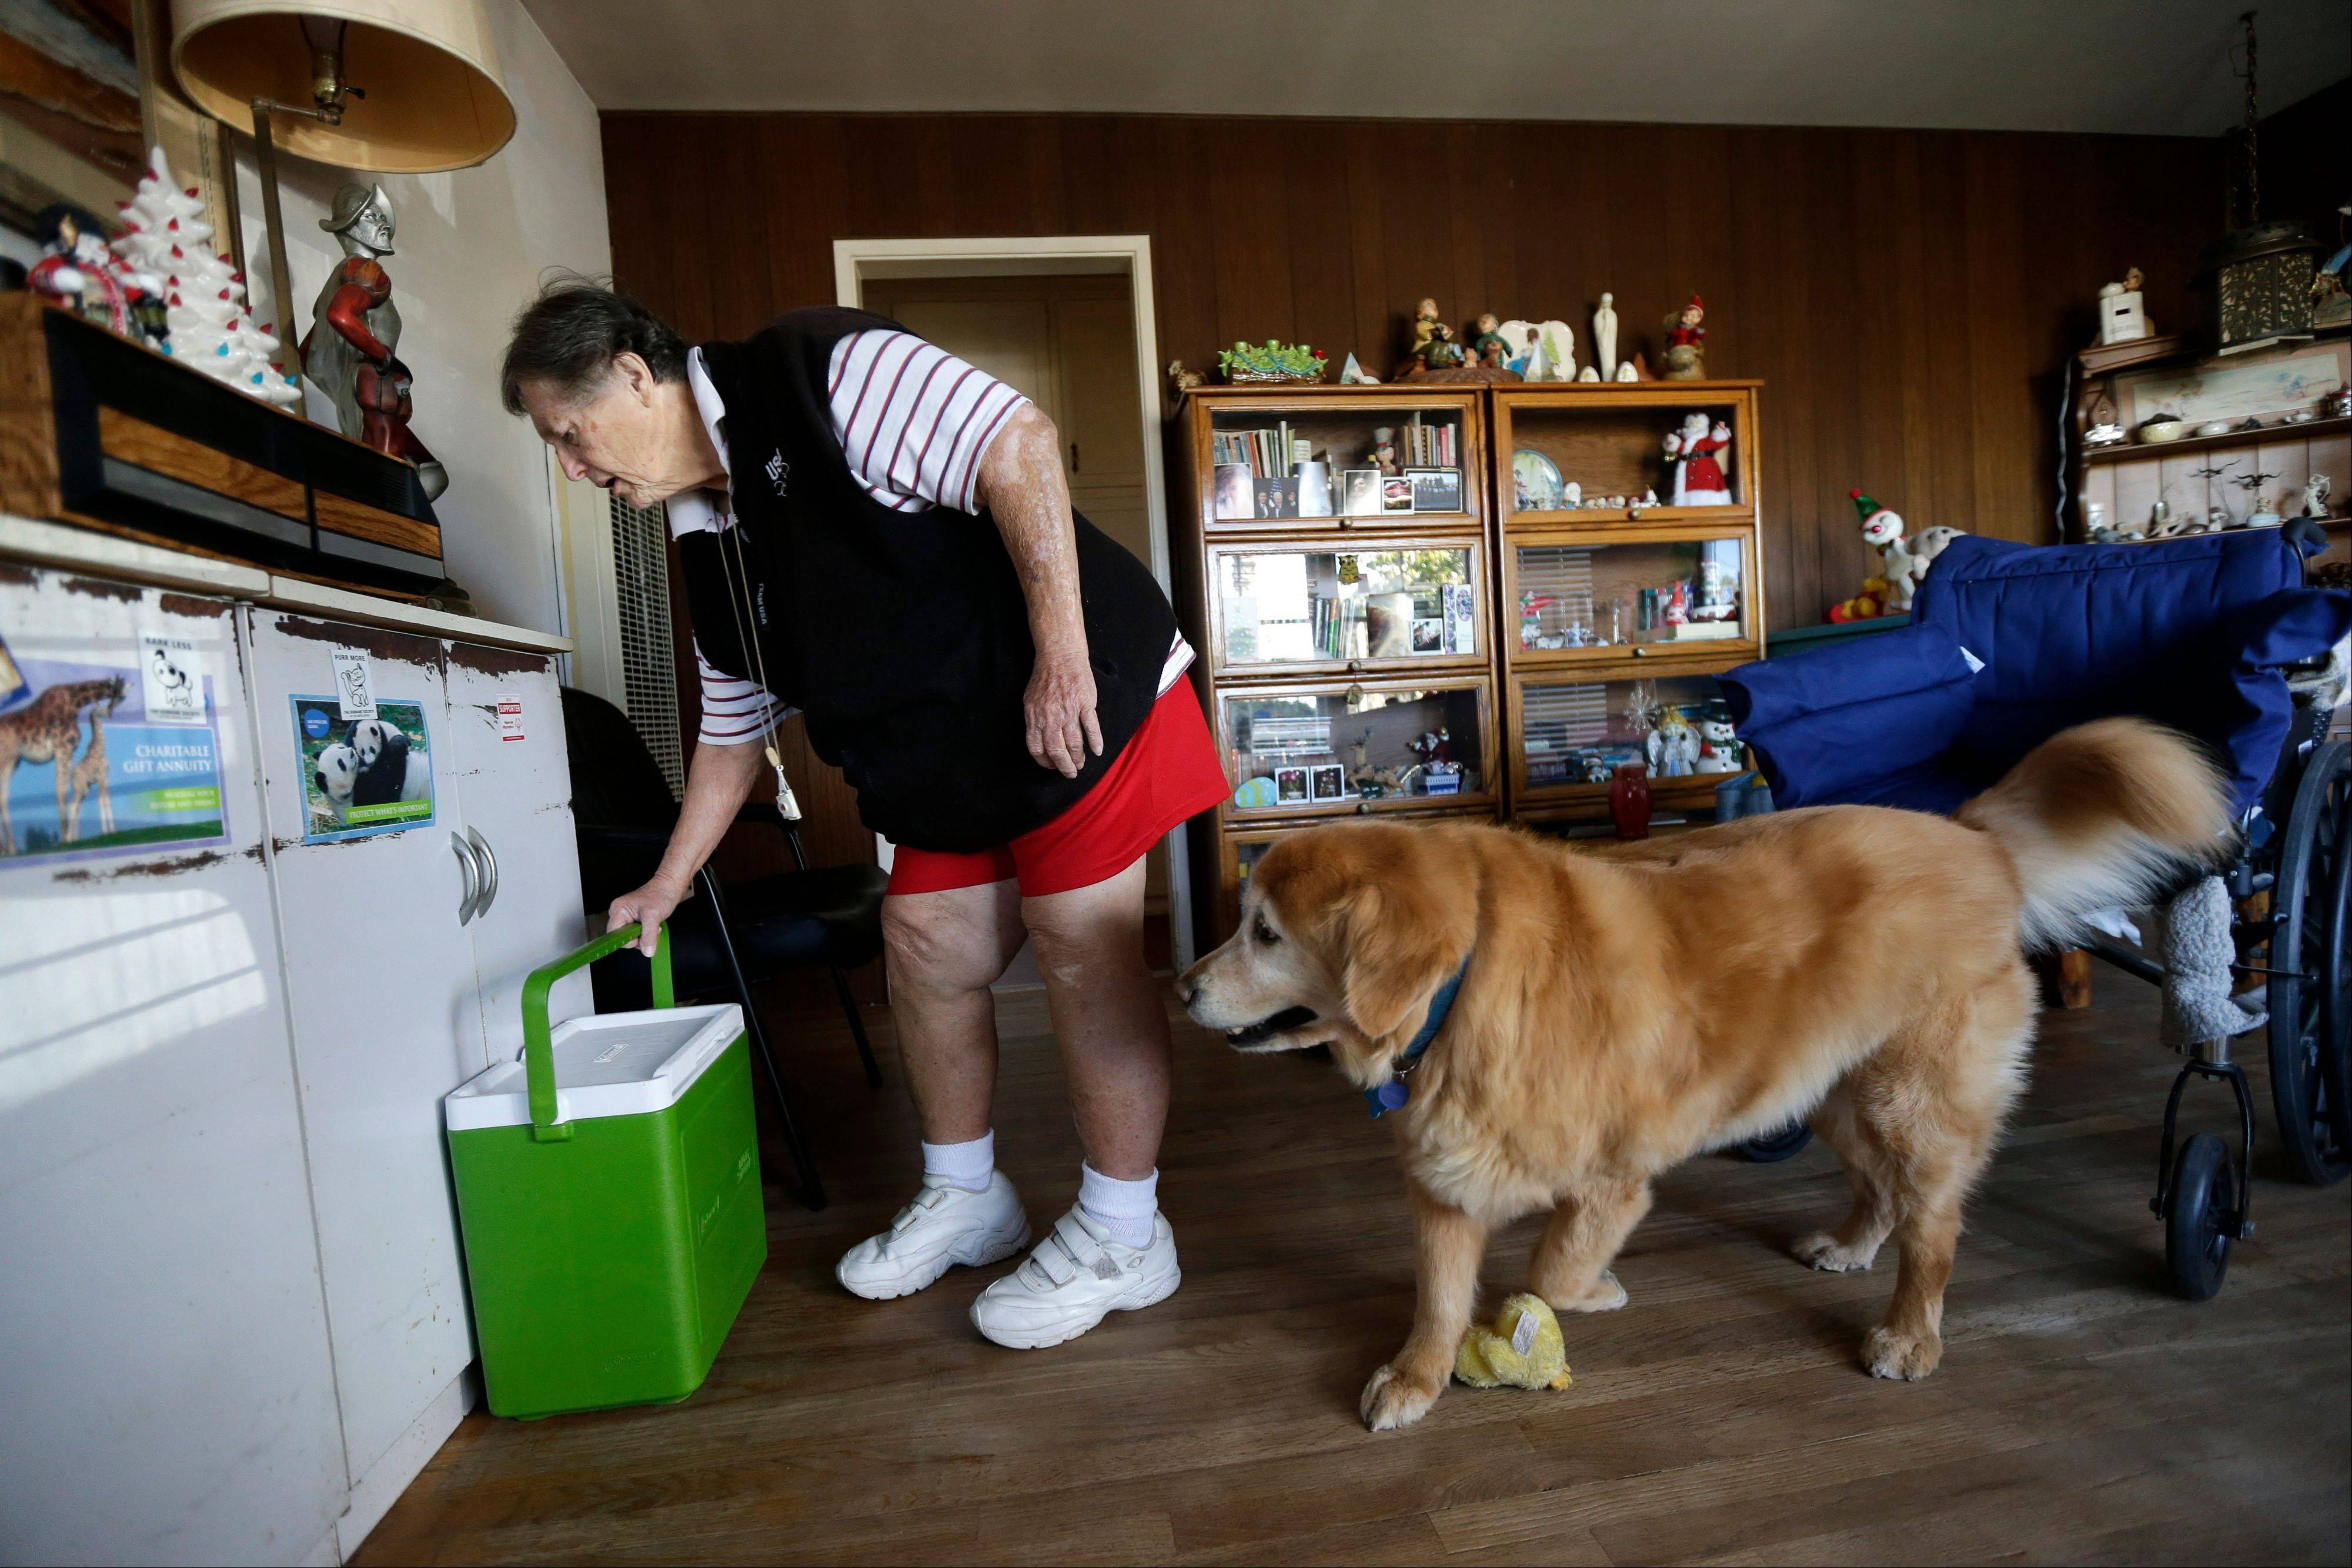 Sherry Scott moves a cooler holding her Meals on Wheels as her 10-year-old golden retriever Tootie looks on at her home in San Diego. Scott, who receives dog food for Tootie through the Animeals program, said she would give her lasagna and pork riblets from Meals on Wheels to Tootie if MOW didn�t bring dog food for the dog. The pet food program is sponsored by the Helen Woodward Animal Center.